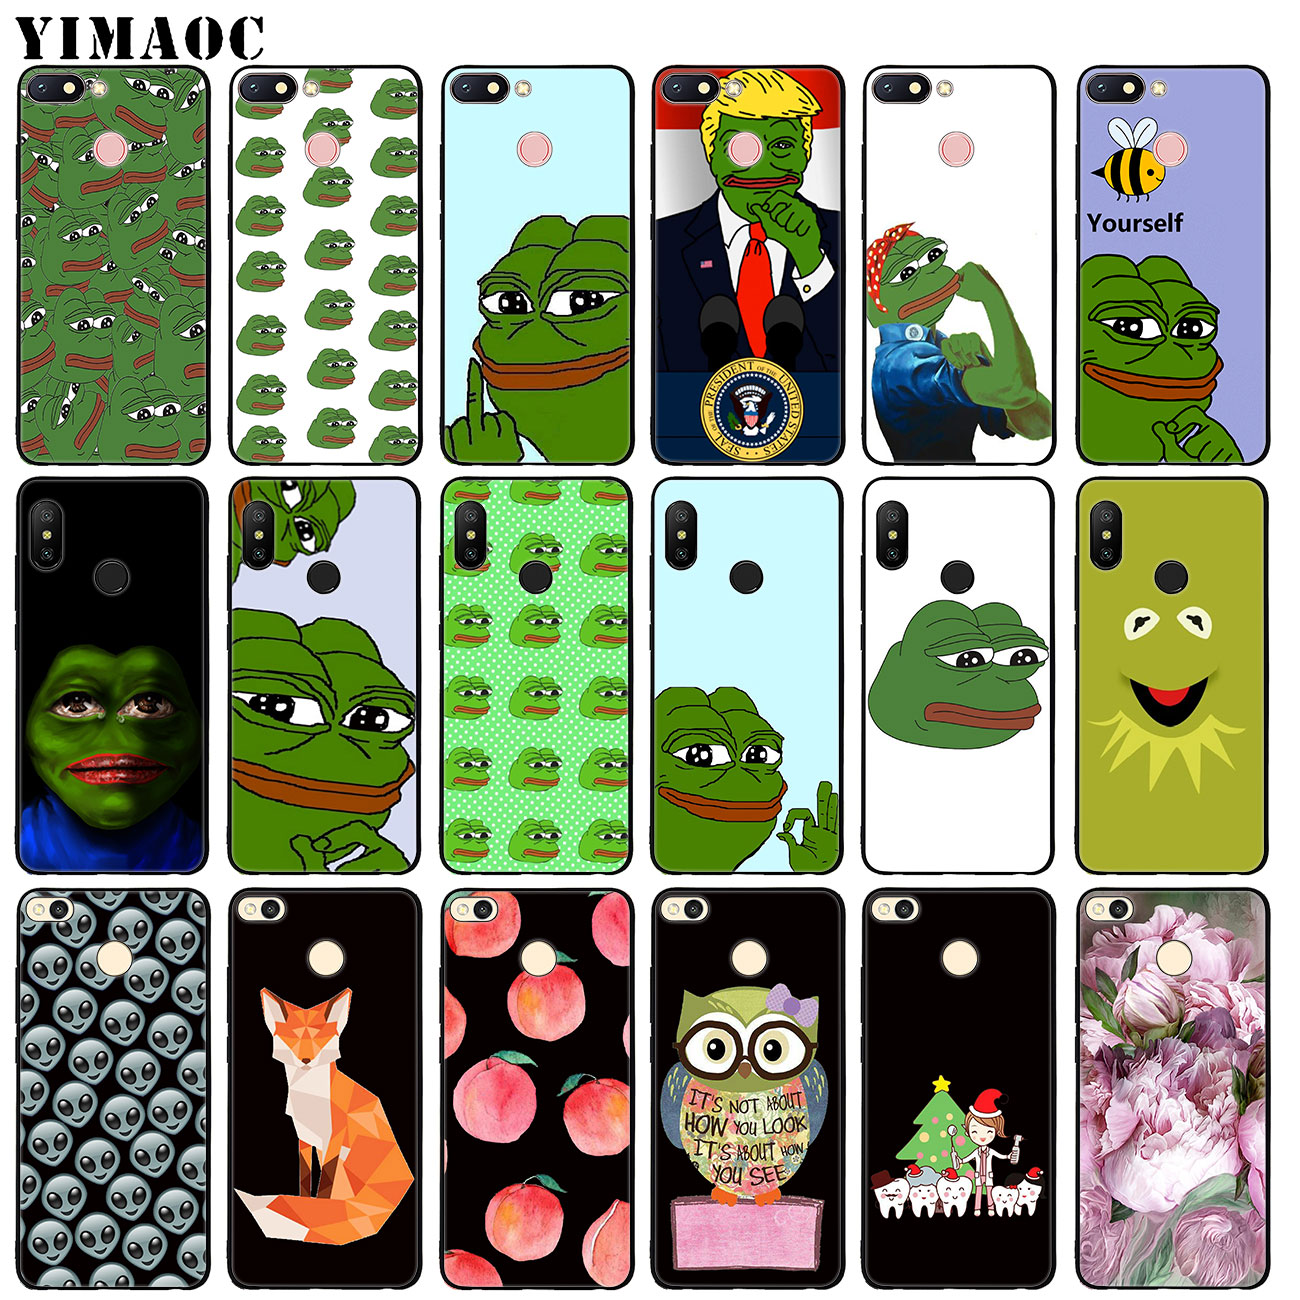 YIMAOC the frog meme memes Soft Silicone Case for Xiaomi Redmi 4A 4X 6A Note 4 5 6 Pro 5A Prime Plus Black flower TPU Cover